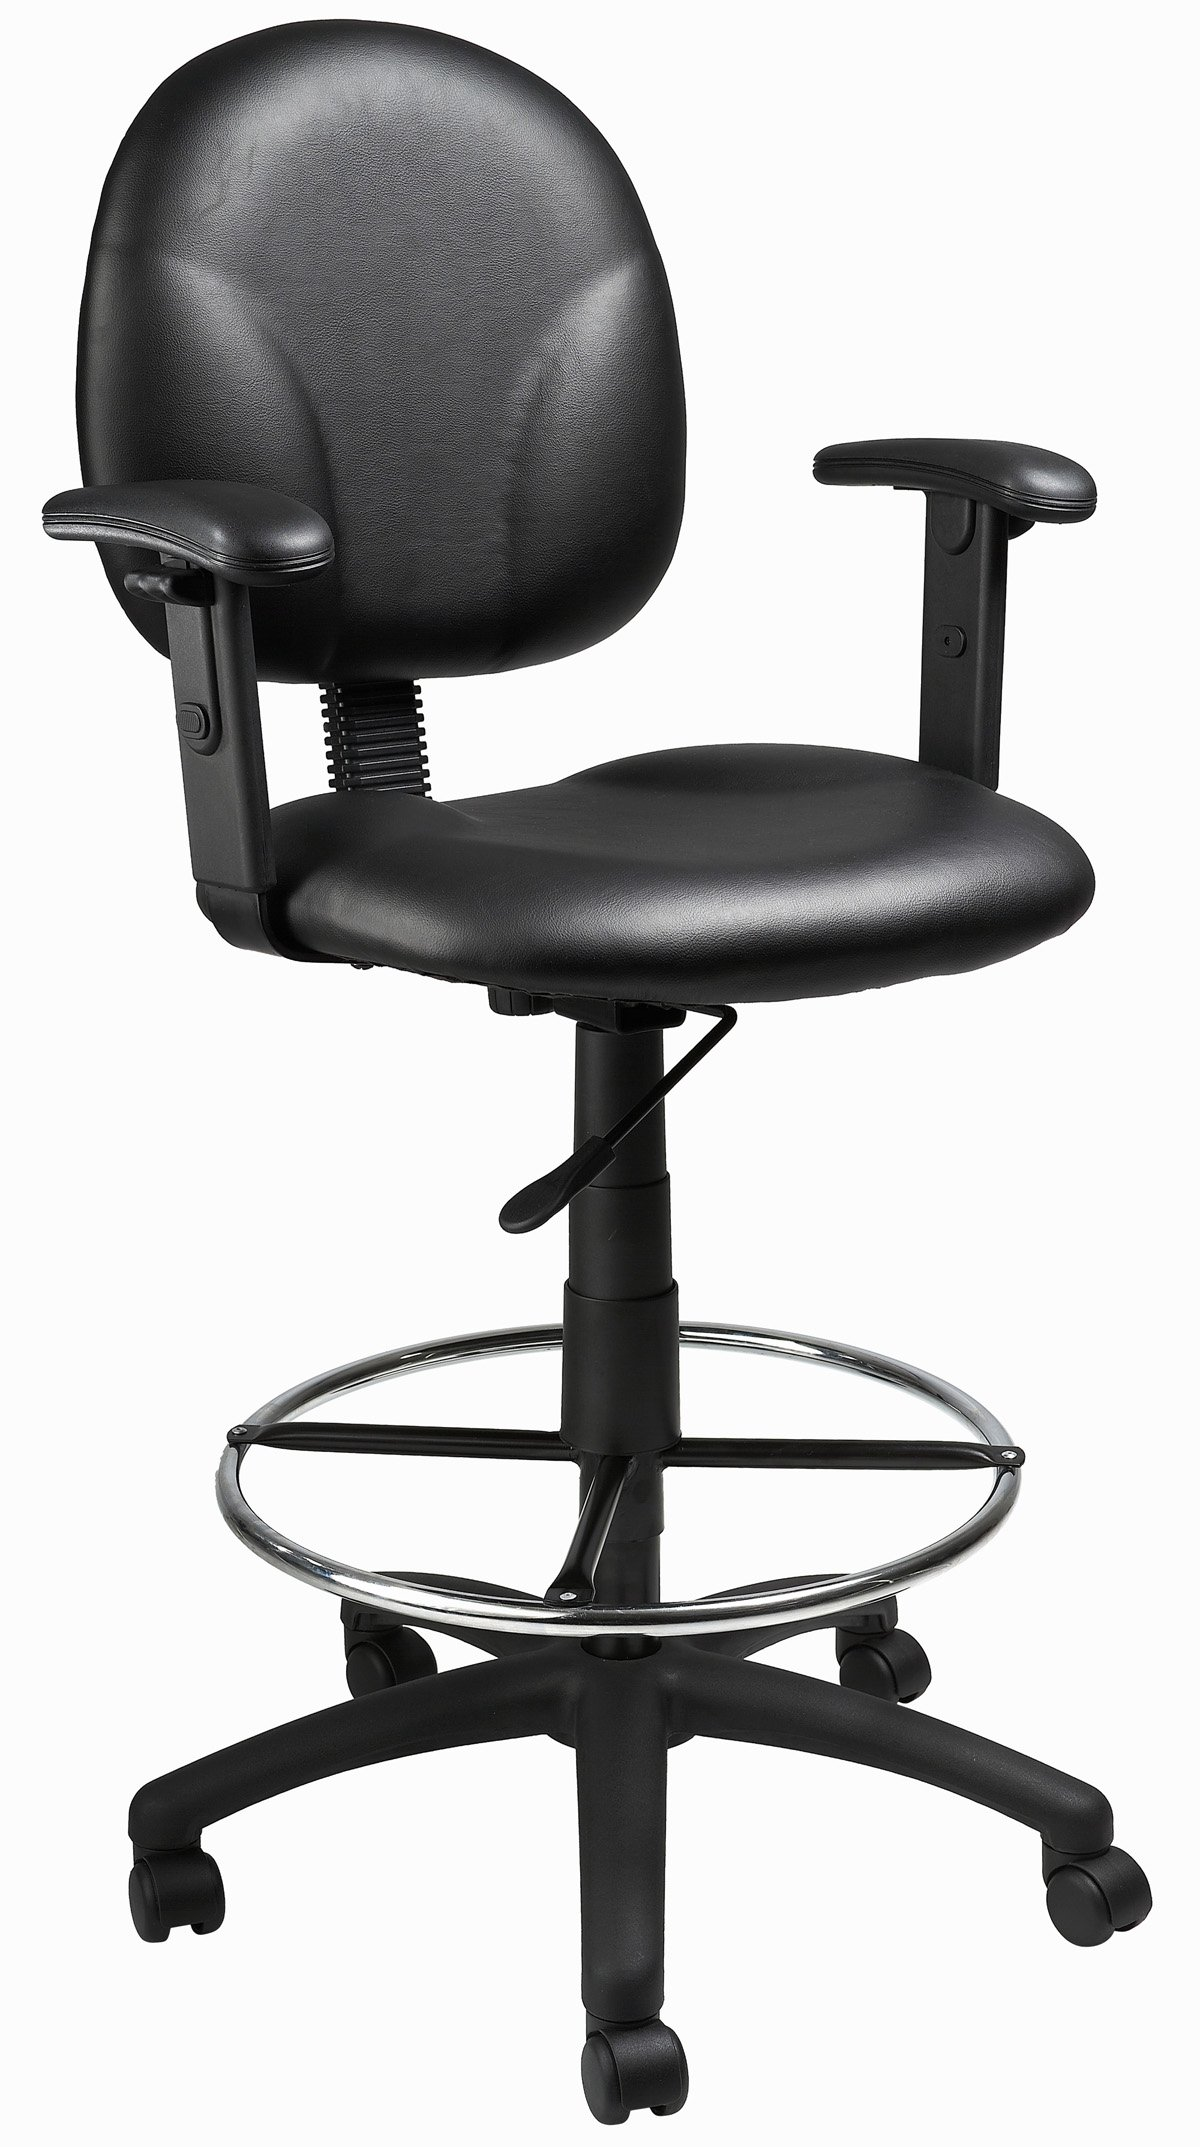 Boss Office Products B1691-CS Stand Up Caressoft Drafting Stool with Adjustable Arms in Black by Boss Office Products